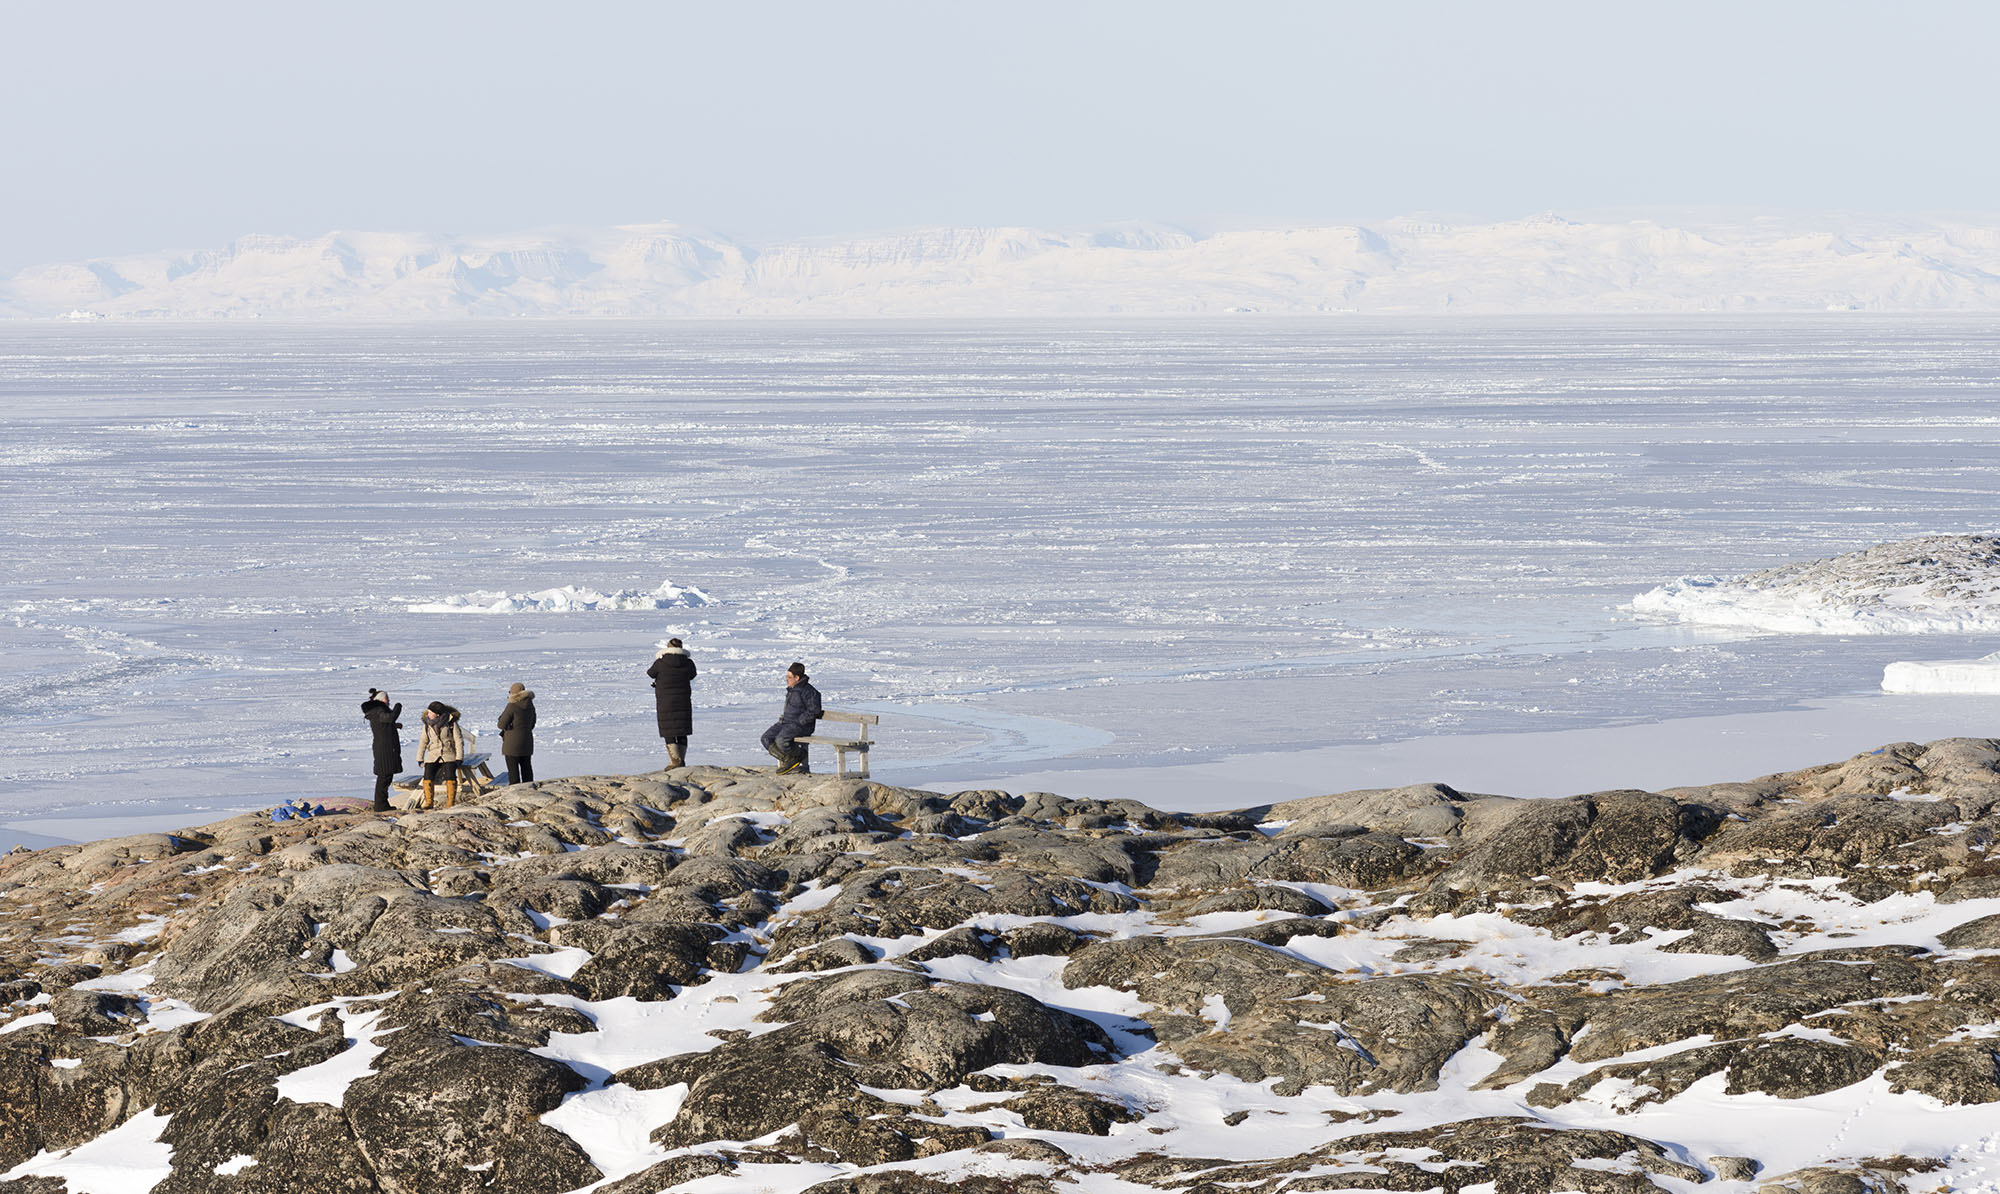 Tourists are looking at the frozen Disko Bay during winter in West Greenland, on July 28, 2020